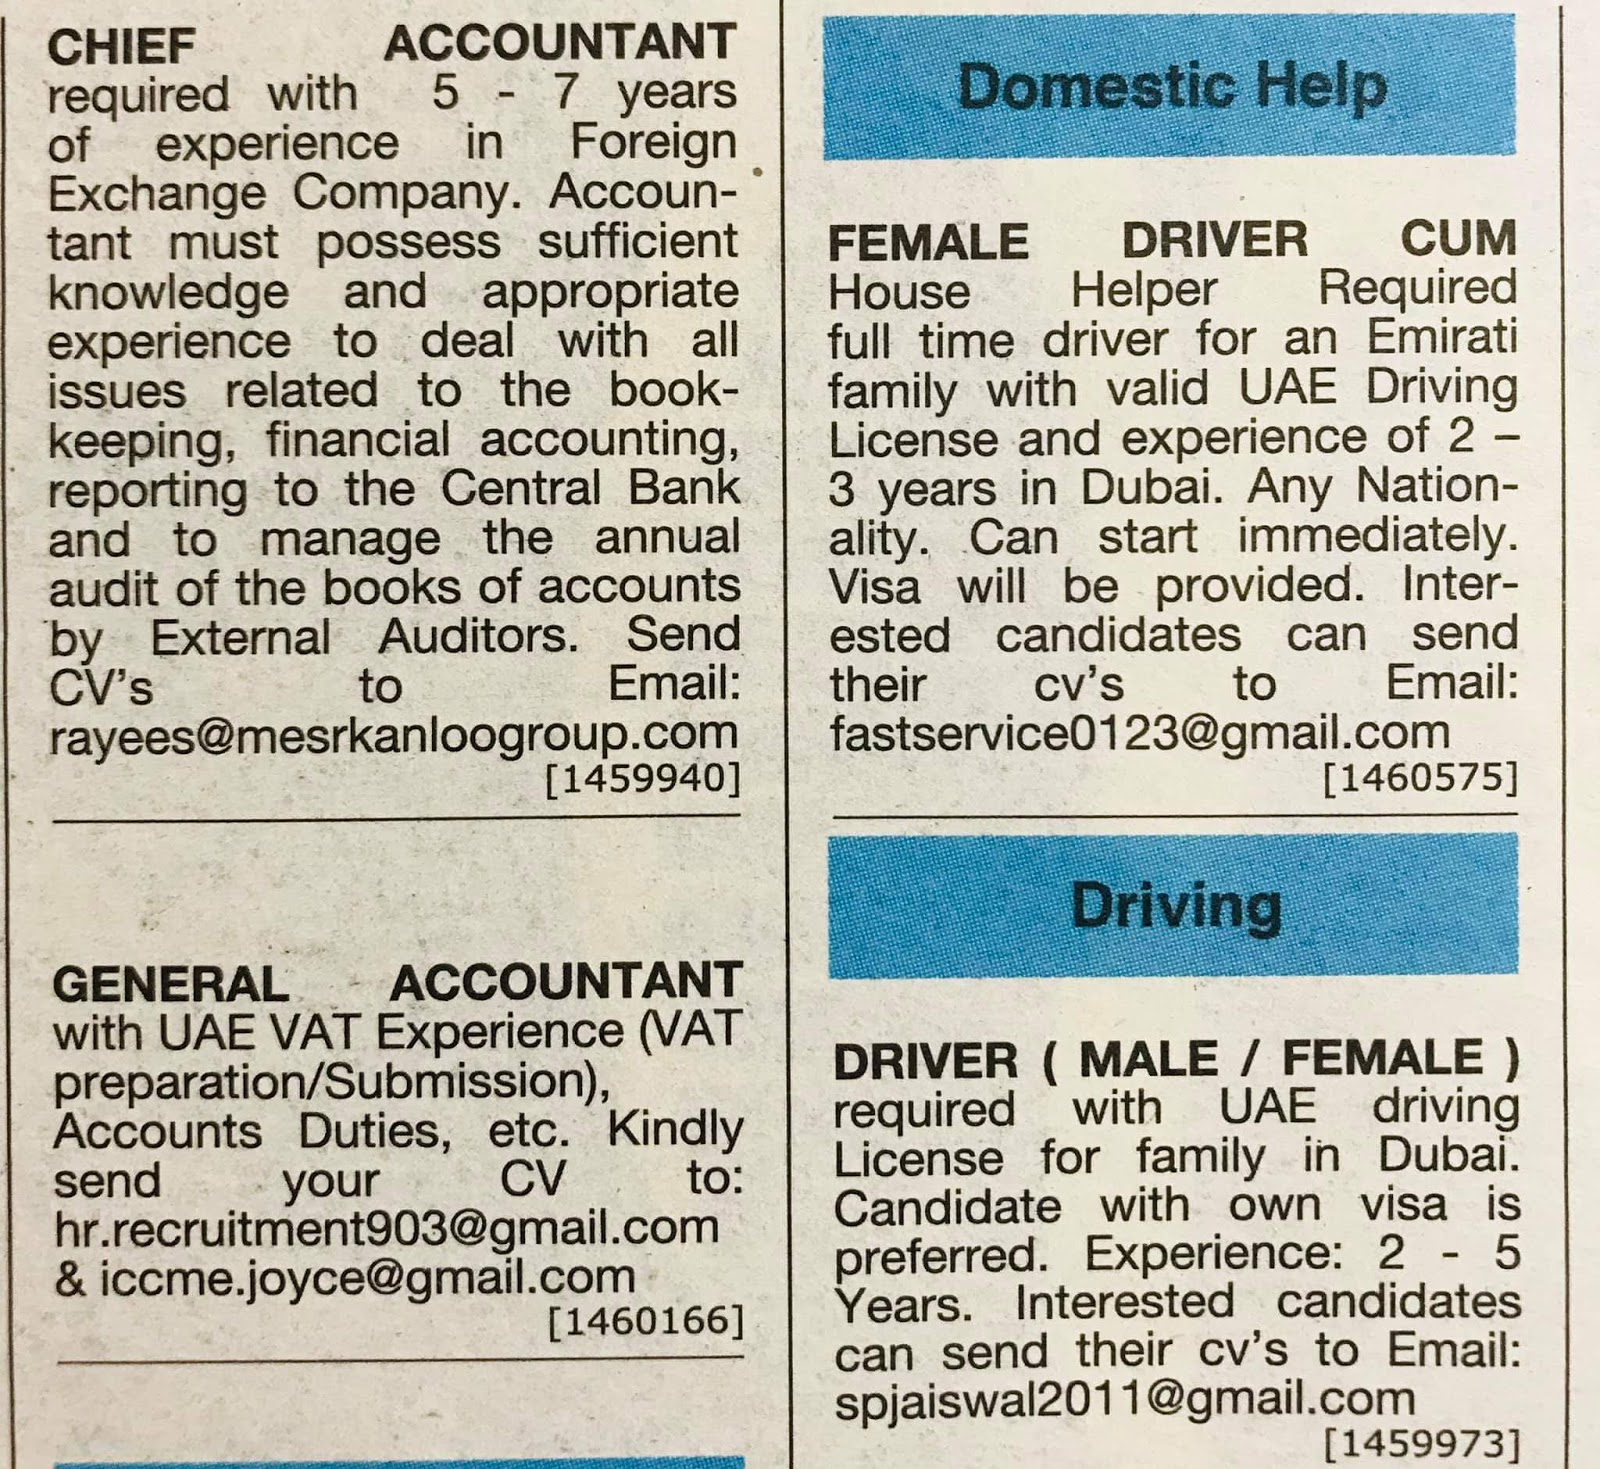 Required Chief Accountant, General Accountant, Male & Femele Drivers